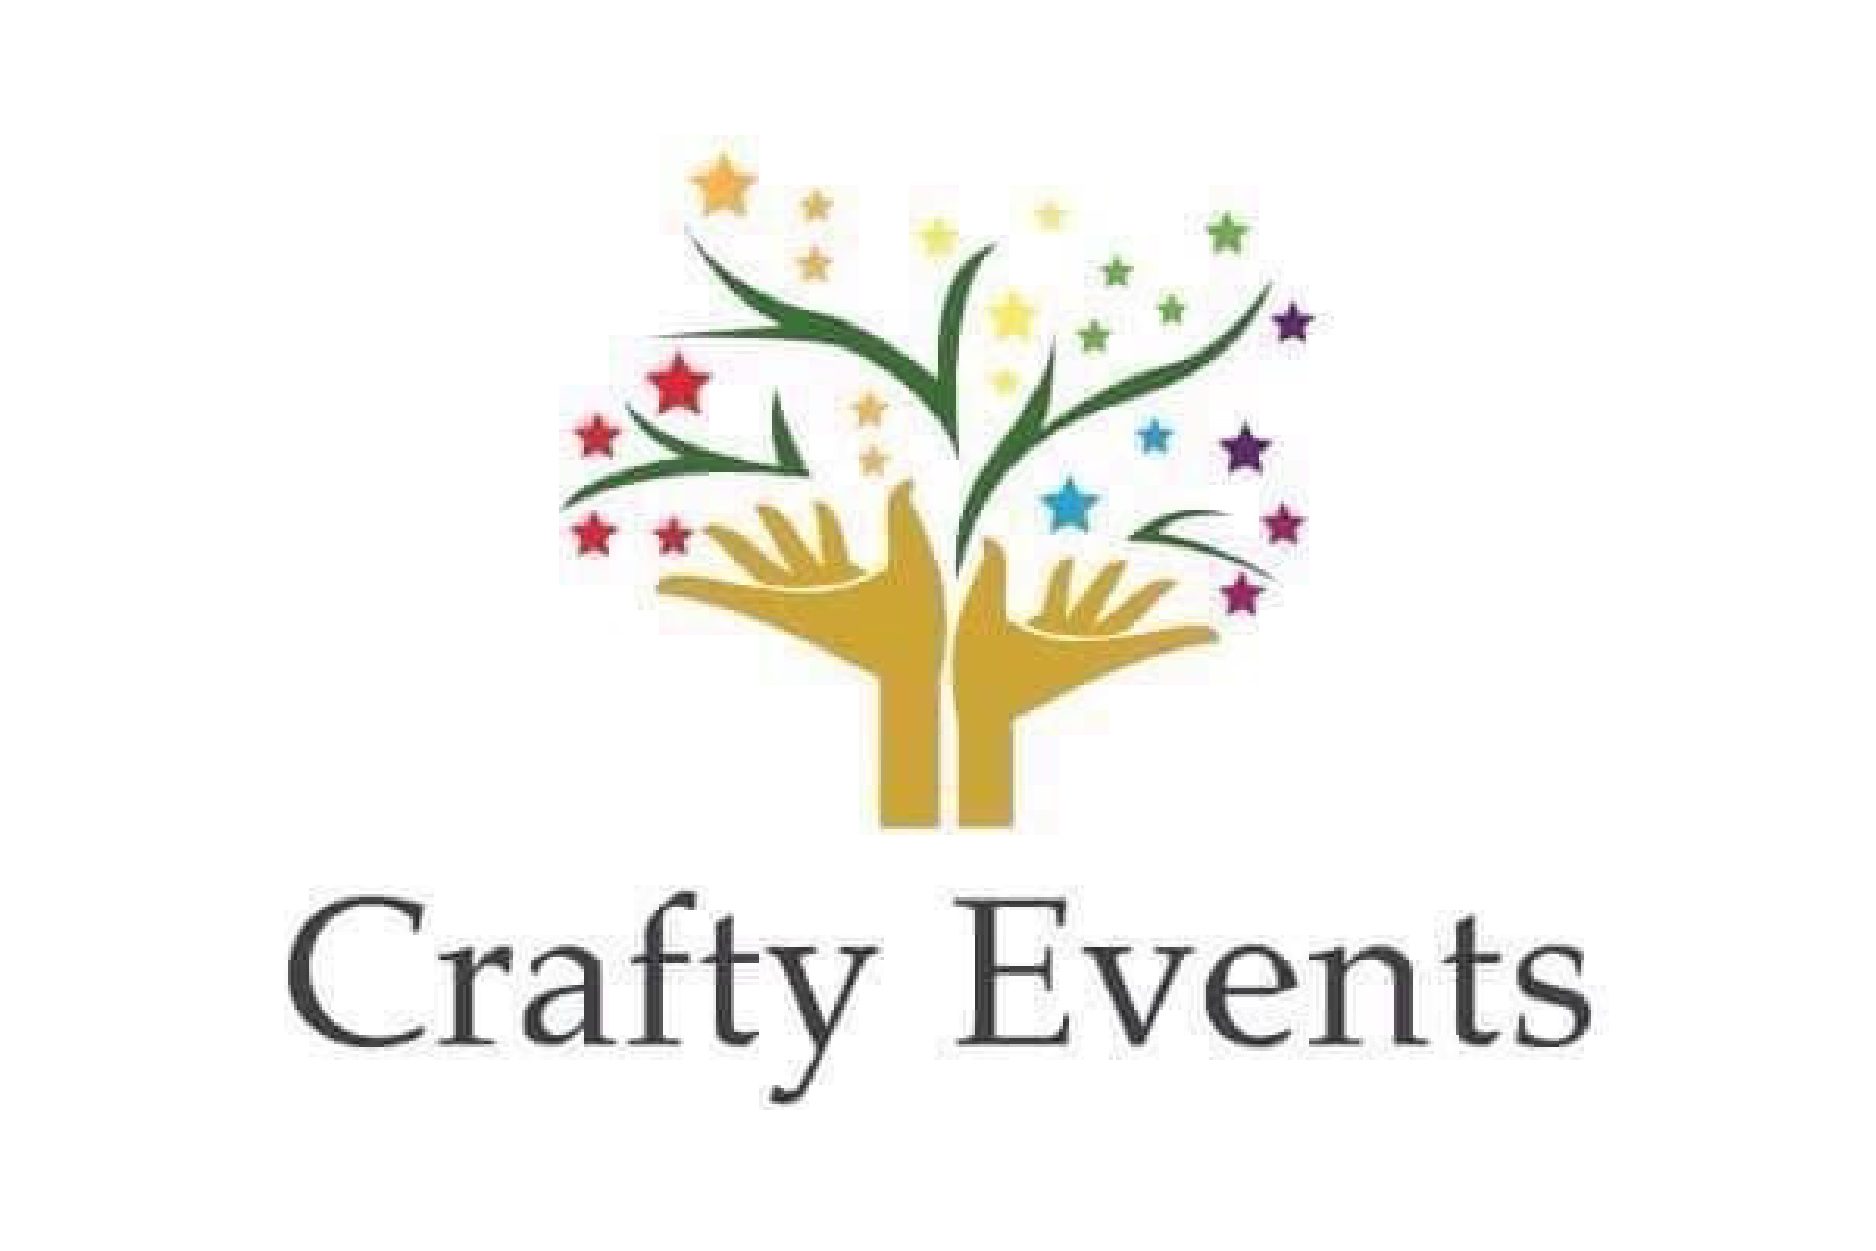 Crafty Events